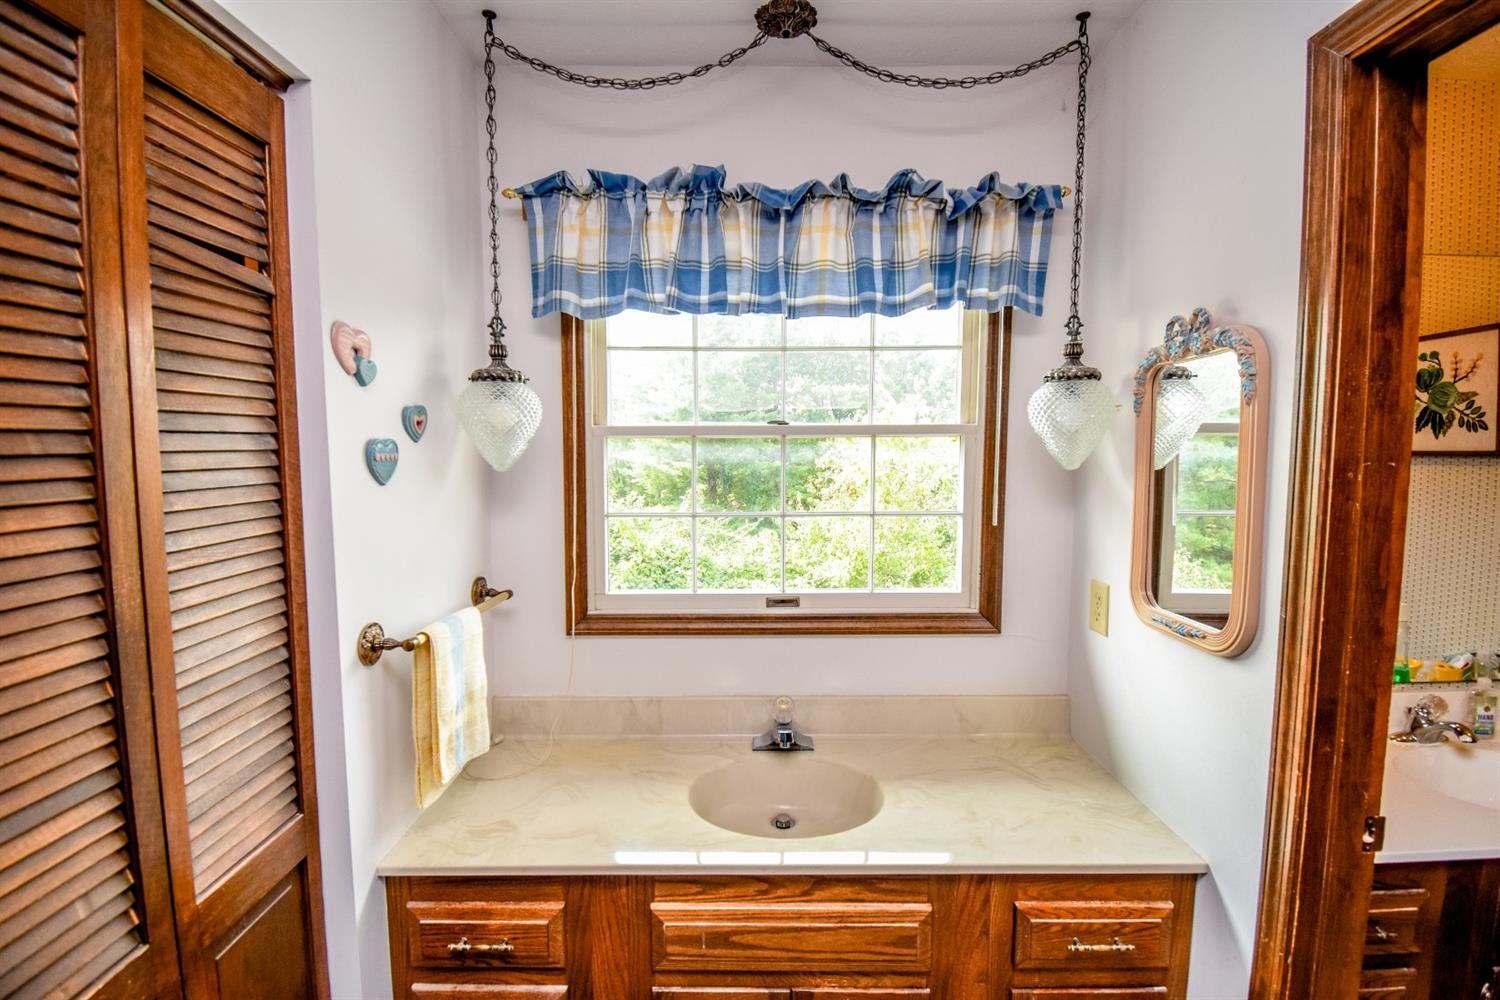 Primary bath 2nd sink, what a view!